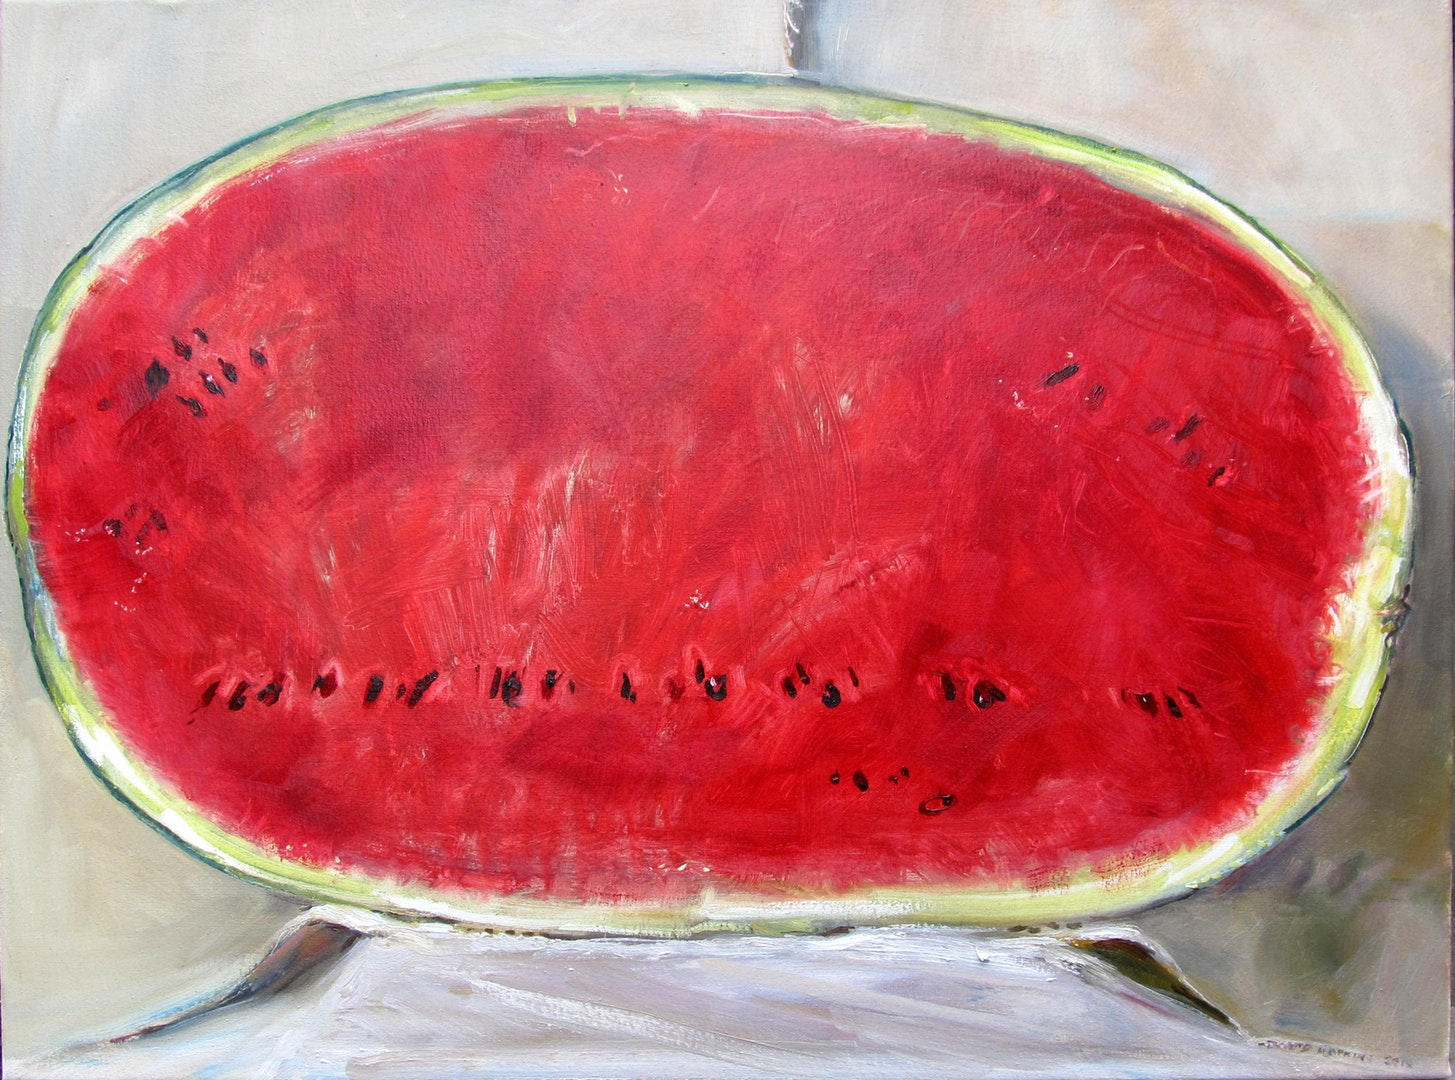 'Big Watermelon', David Hopkins, Oil on canvas, 60.5 x 80 x 4 cm